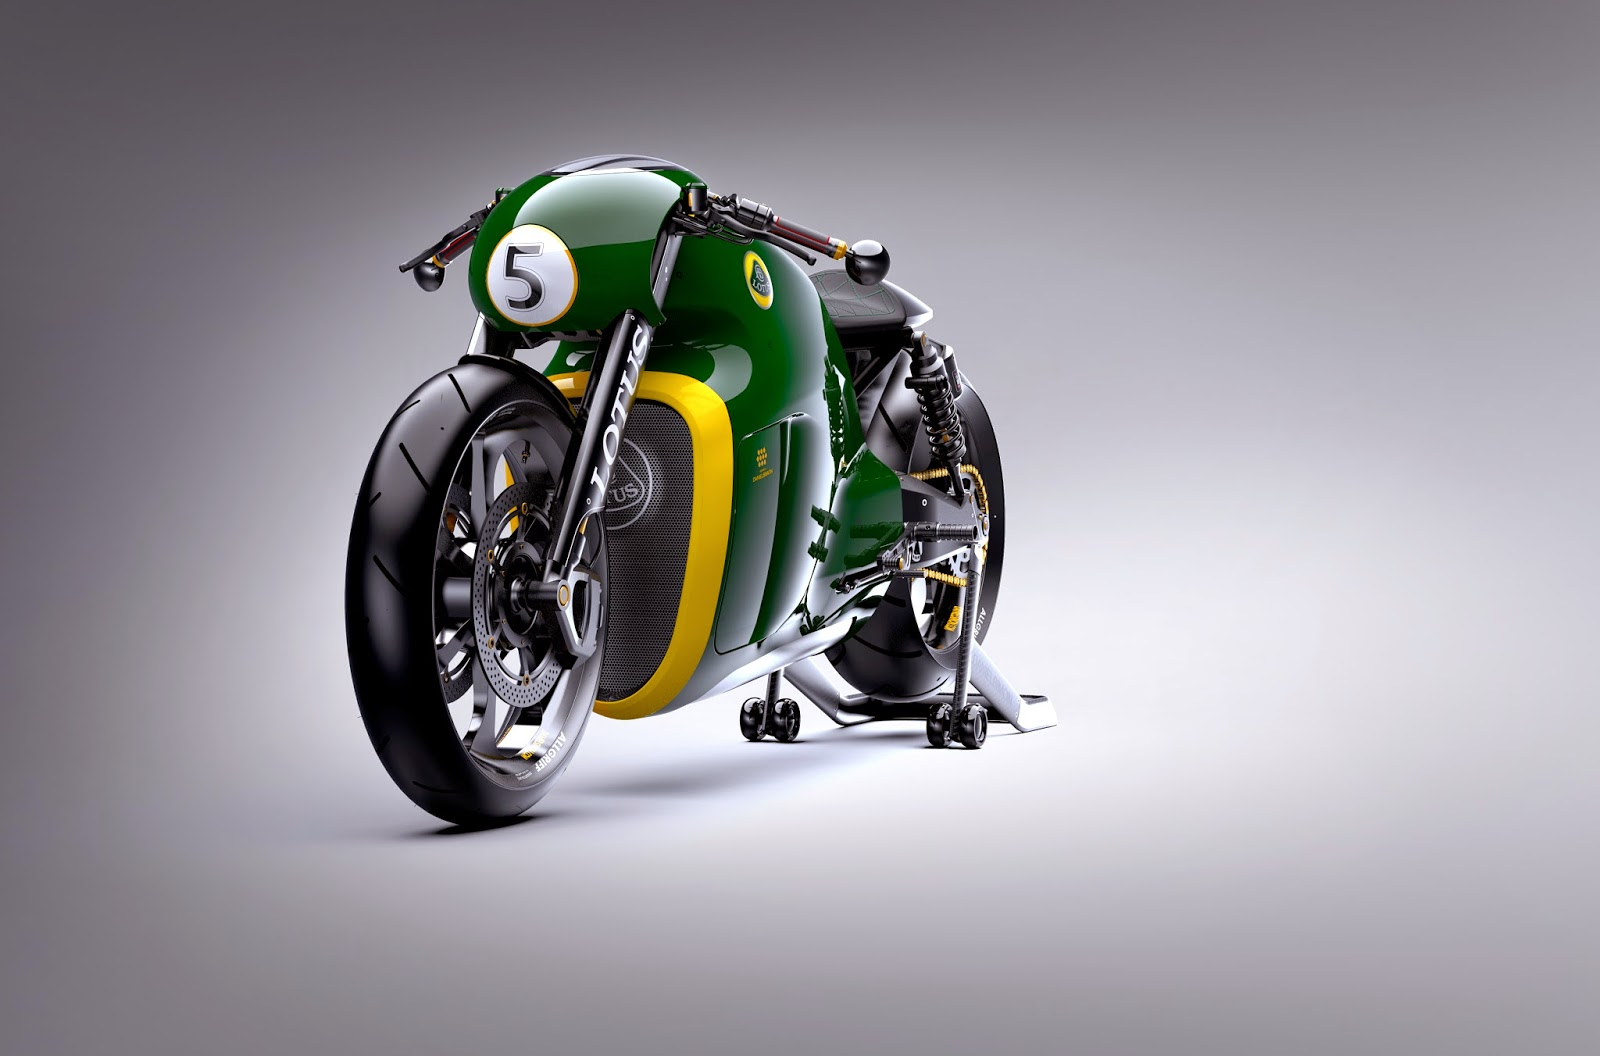 Auto Show, Bike Designer, Bikes, Business, Daniel Simon Head, Heavy bike, Lotus, Lotus  C-01, Lotus Motorcycle, Luxury Bikes, News, Technology, V-Twin engine,